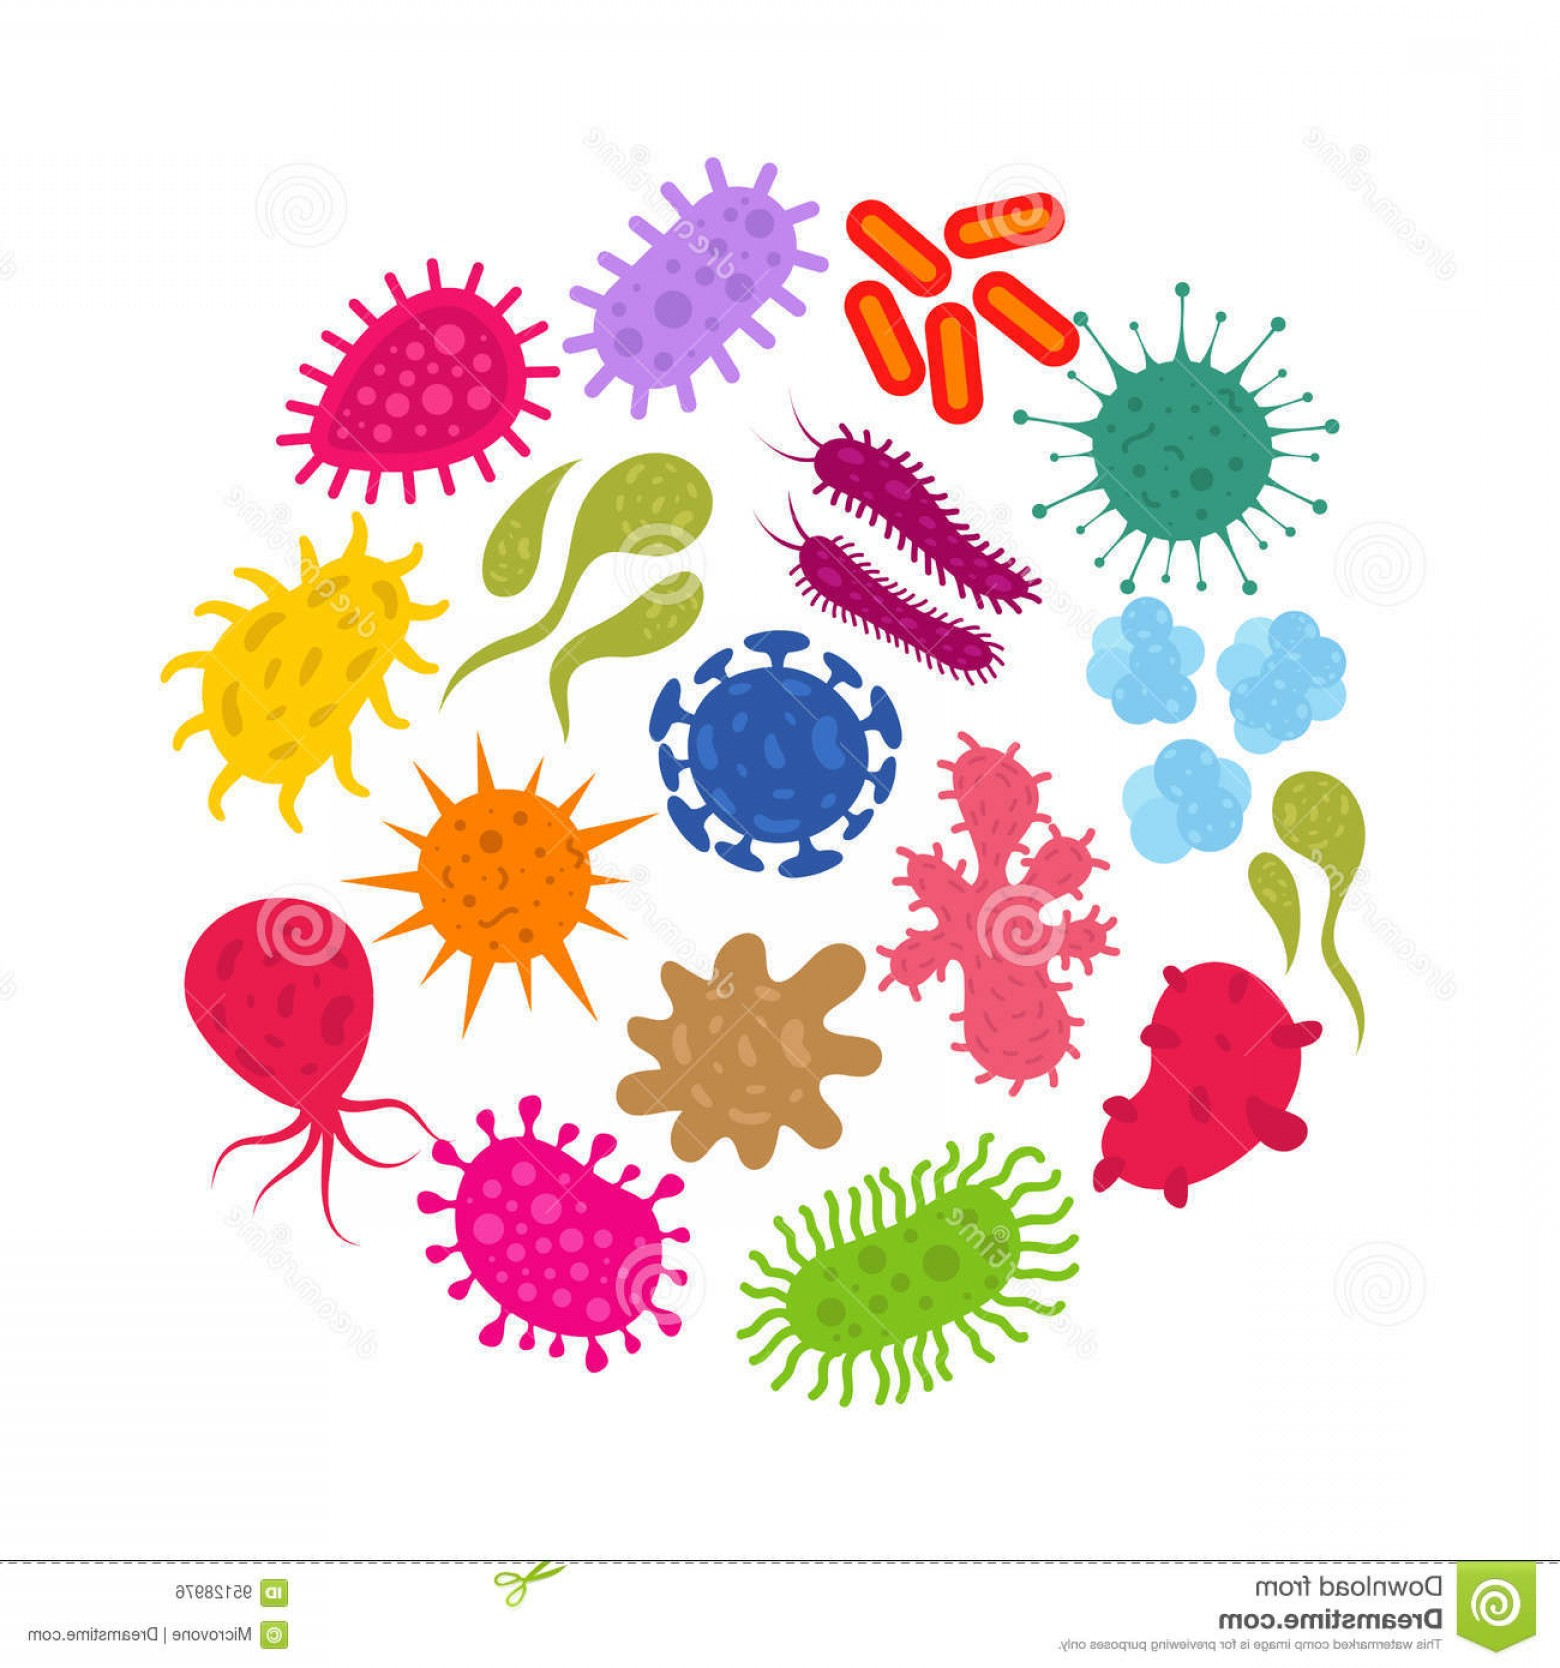 Vector -Borne Infection: Stock Illustration Microorganism Primitive Infection Virus Bacteria Germs Vector Icons Illustration Image